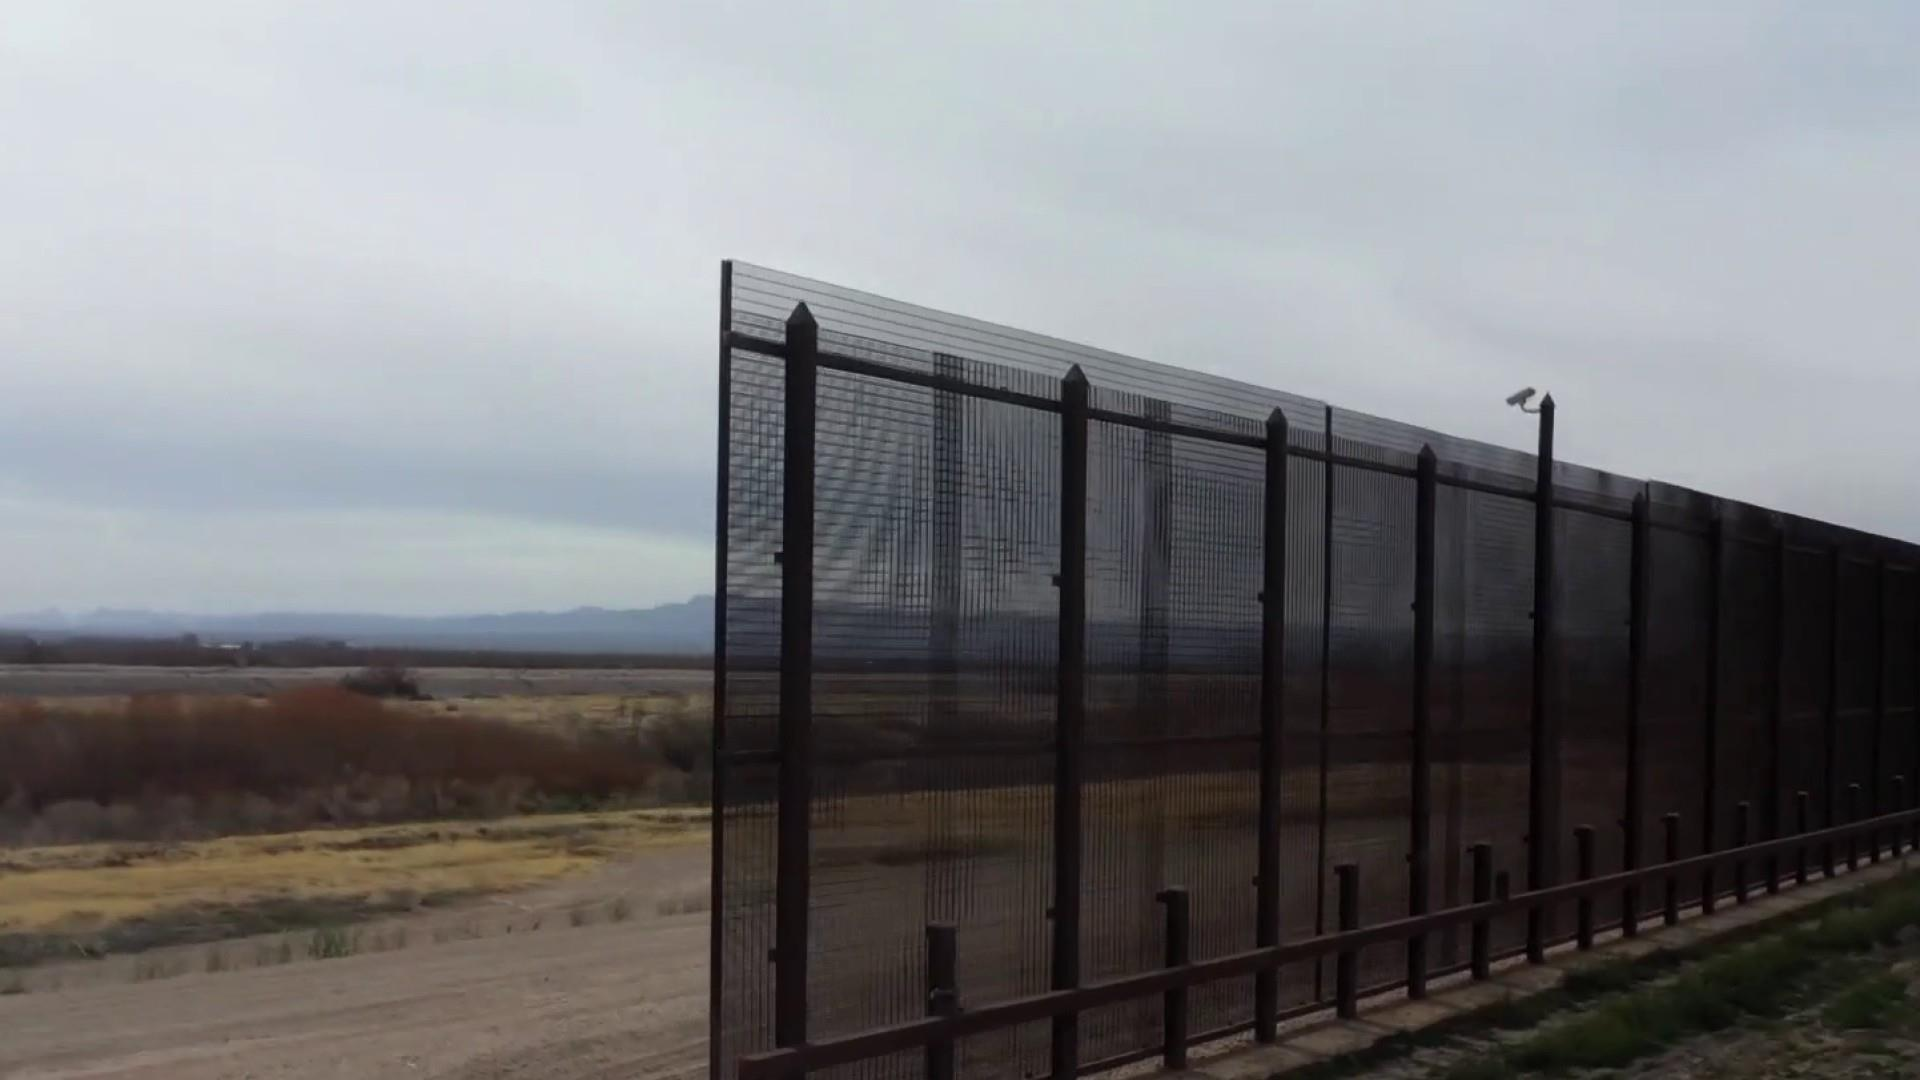 Pentagon takes money from military schools, day care to fund Trump's wall